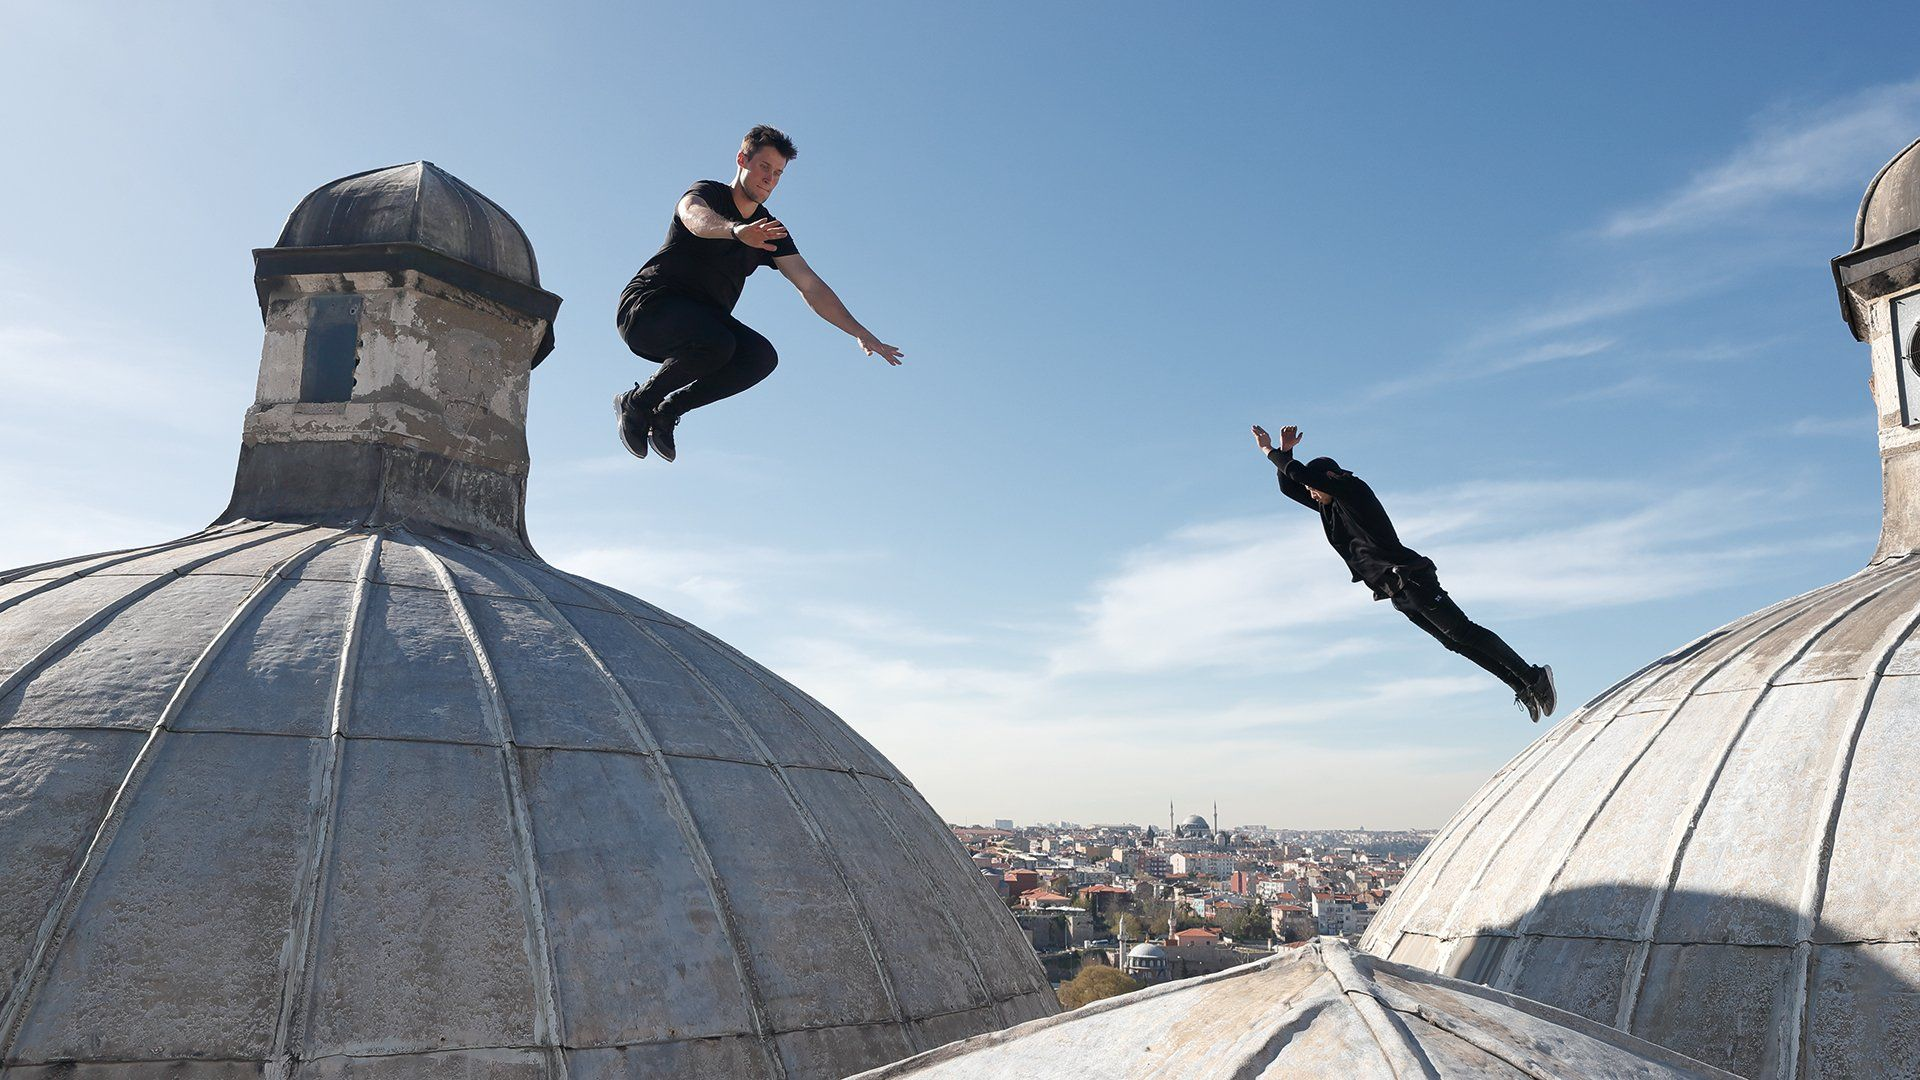 2 young men dressed in black leap around on a rooftop between Turkish domes with stone lanterns on top